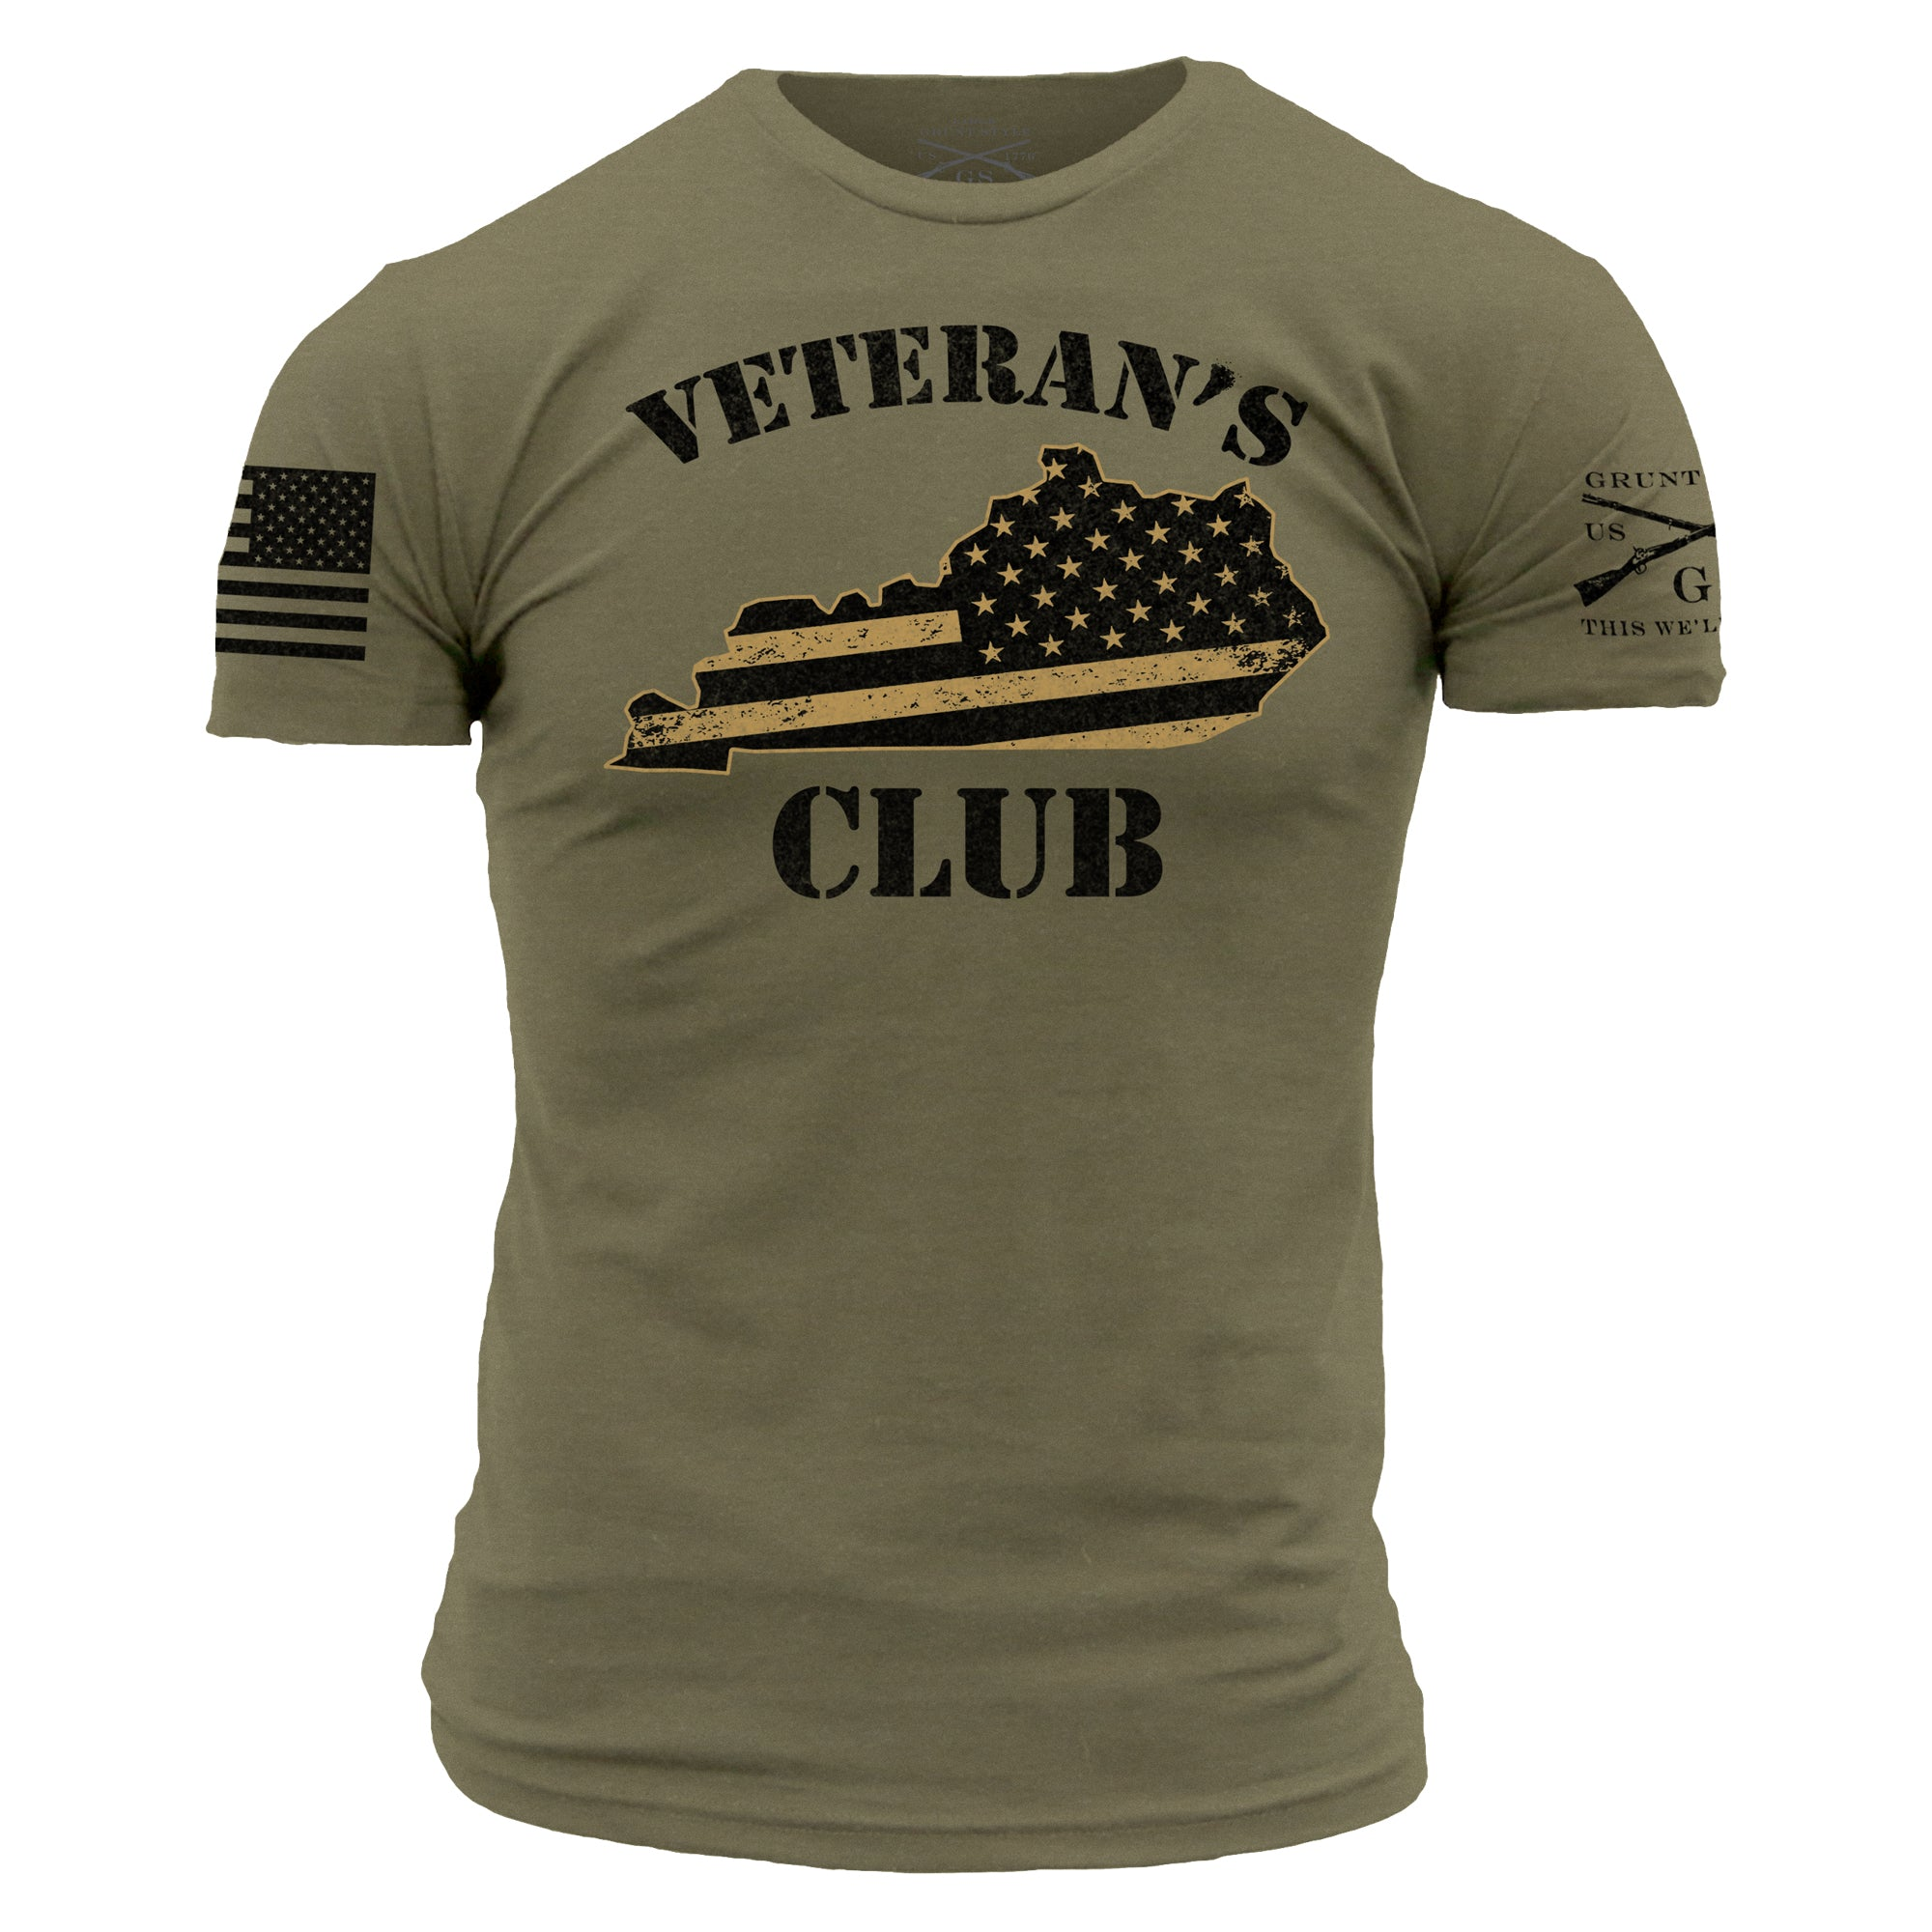 Veteran's Club Inc.